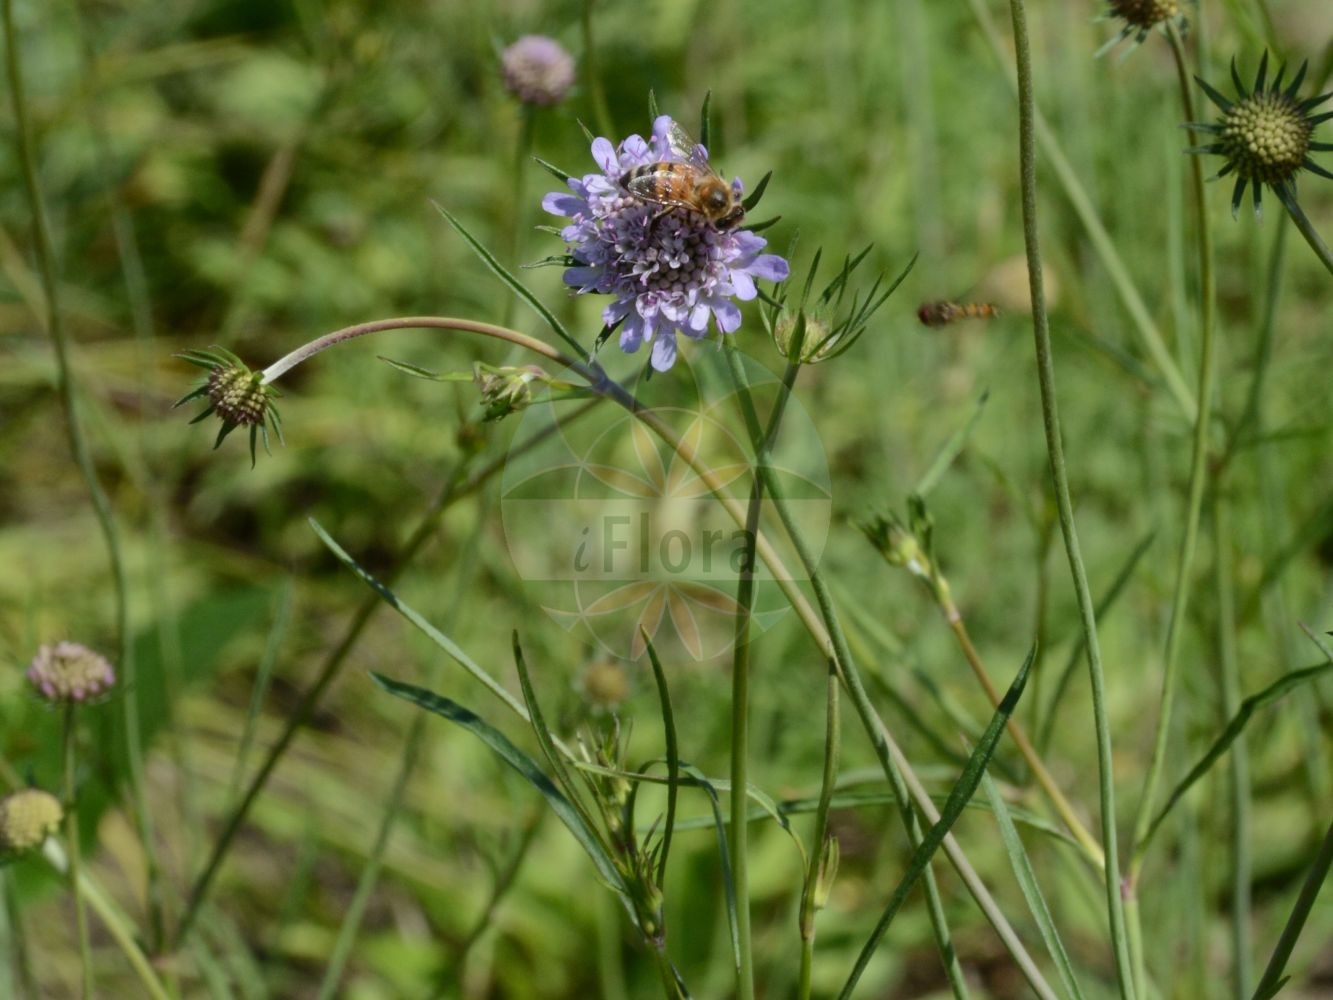 Foto von Scabiosa columbaria (Tauben-Skabiose - Small Scabious). Das Foto wurde in Bremen, Deutschland aufgenommen. ---- Photo of Scabiosa columbaria (Tauben-Skabiose - Small Scabious).The picture was taken in Bremen, Germany.(Scabiosa columbaria,Tauben-Skabiose,Small Scabious,Scabiosa affinis,Scabiosa amoena,Scabiosa angulata,Scabiosa banatica,Scabiosa ceratophylla,Scabiosa columnae,Scabiosa communis,,Dove Scabious,Dove Pincushions,Scabiosa,Skabiose,Scabious,Caprifoliaceae,Geissblattgewaechse,Honeysuckle family)